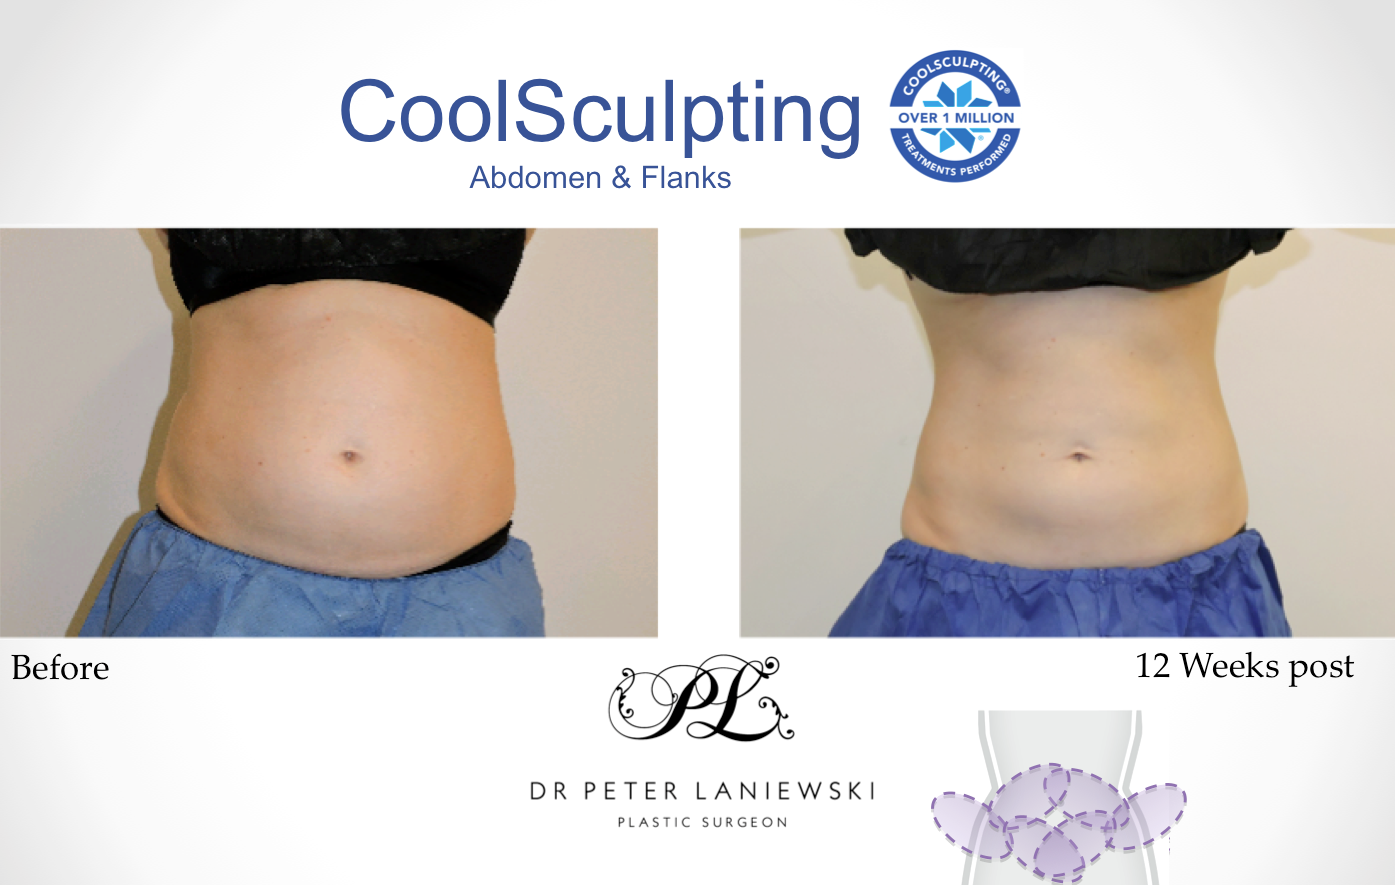 Chelsea-E-Abdo-Flanks-Coolsculpting